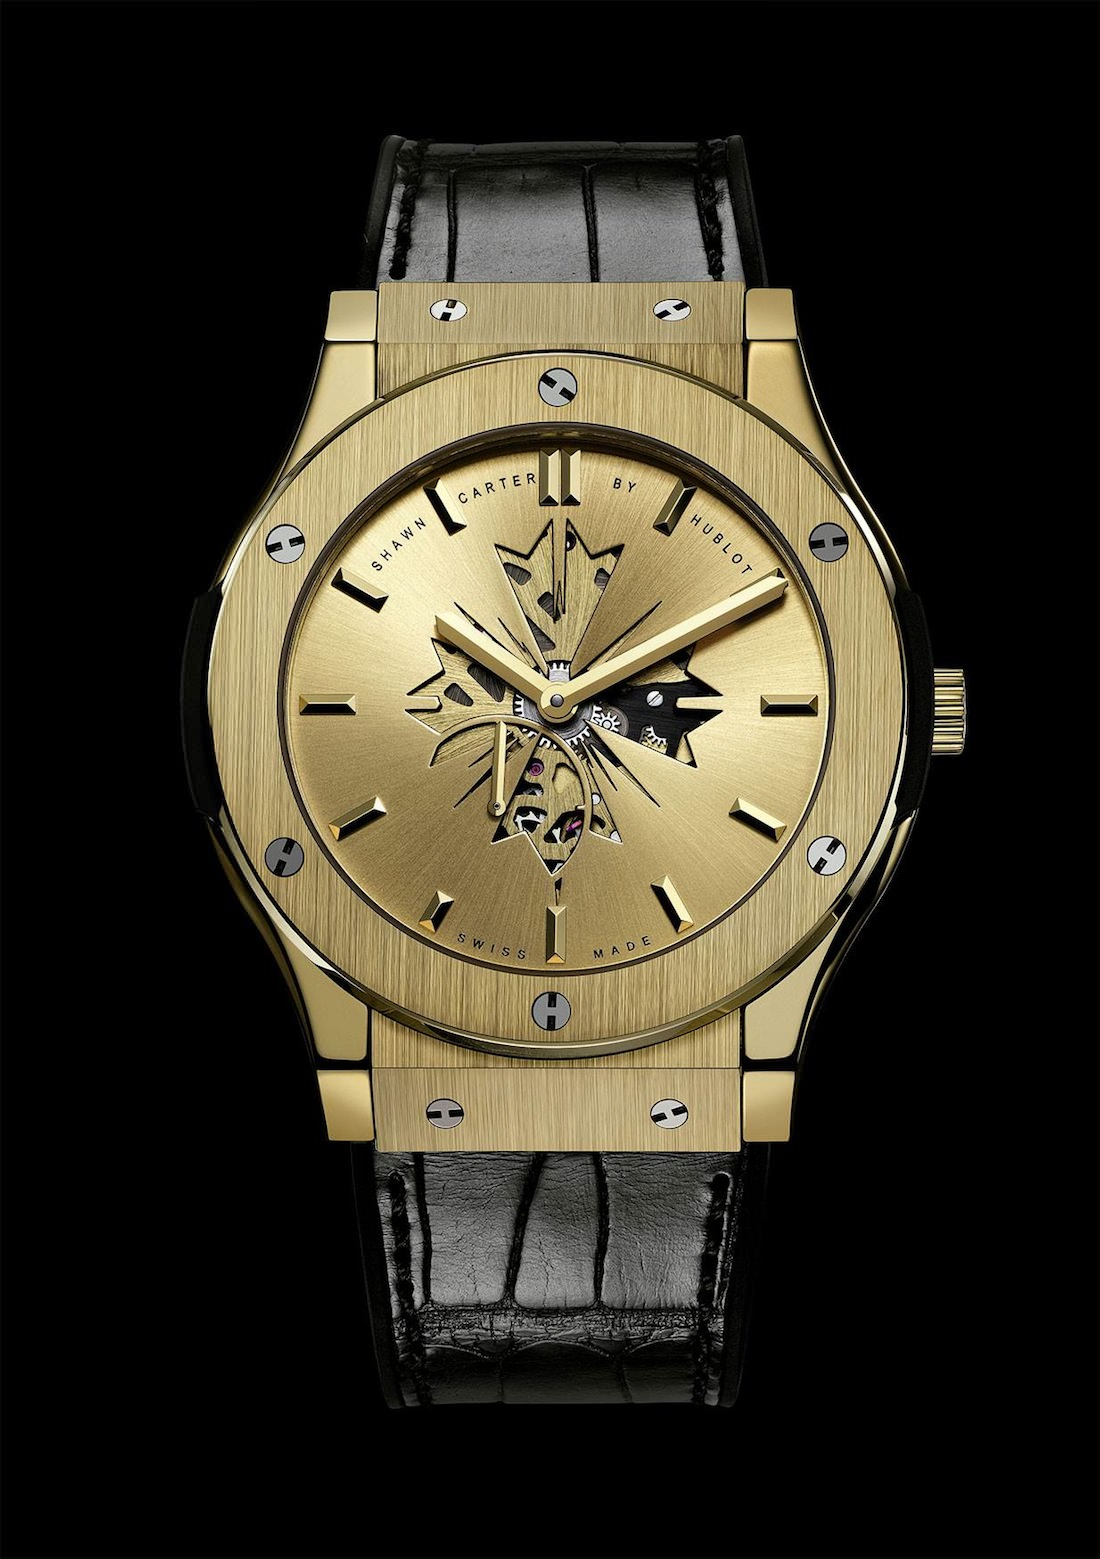 Hublot-Shawn-Carter-jayz-06